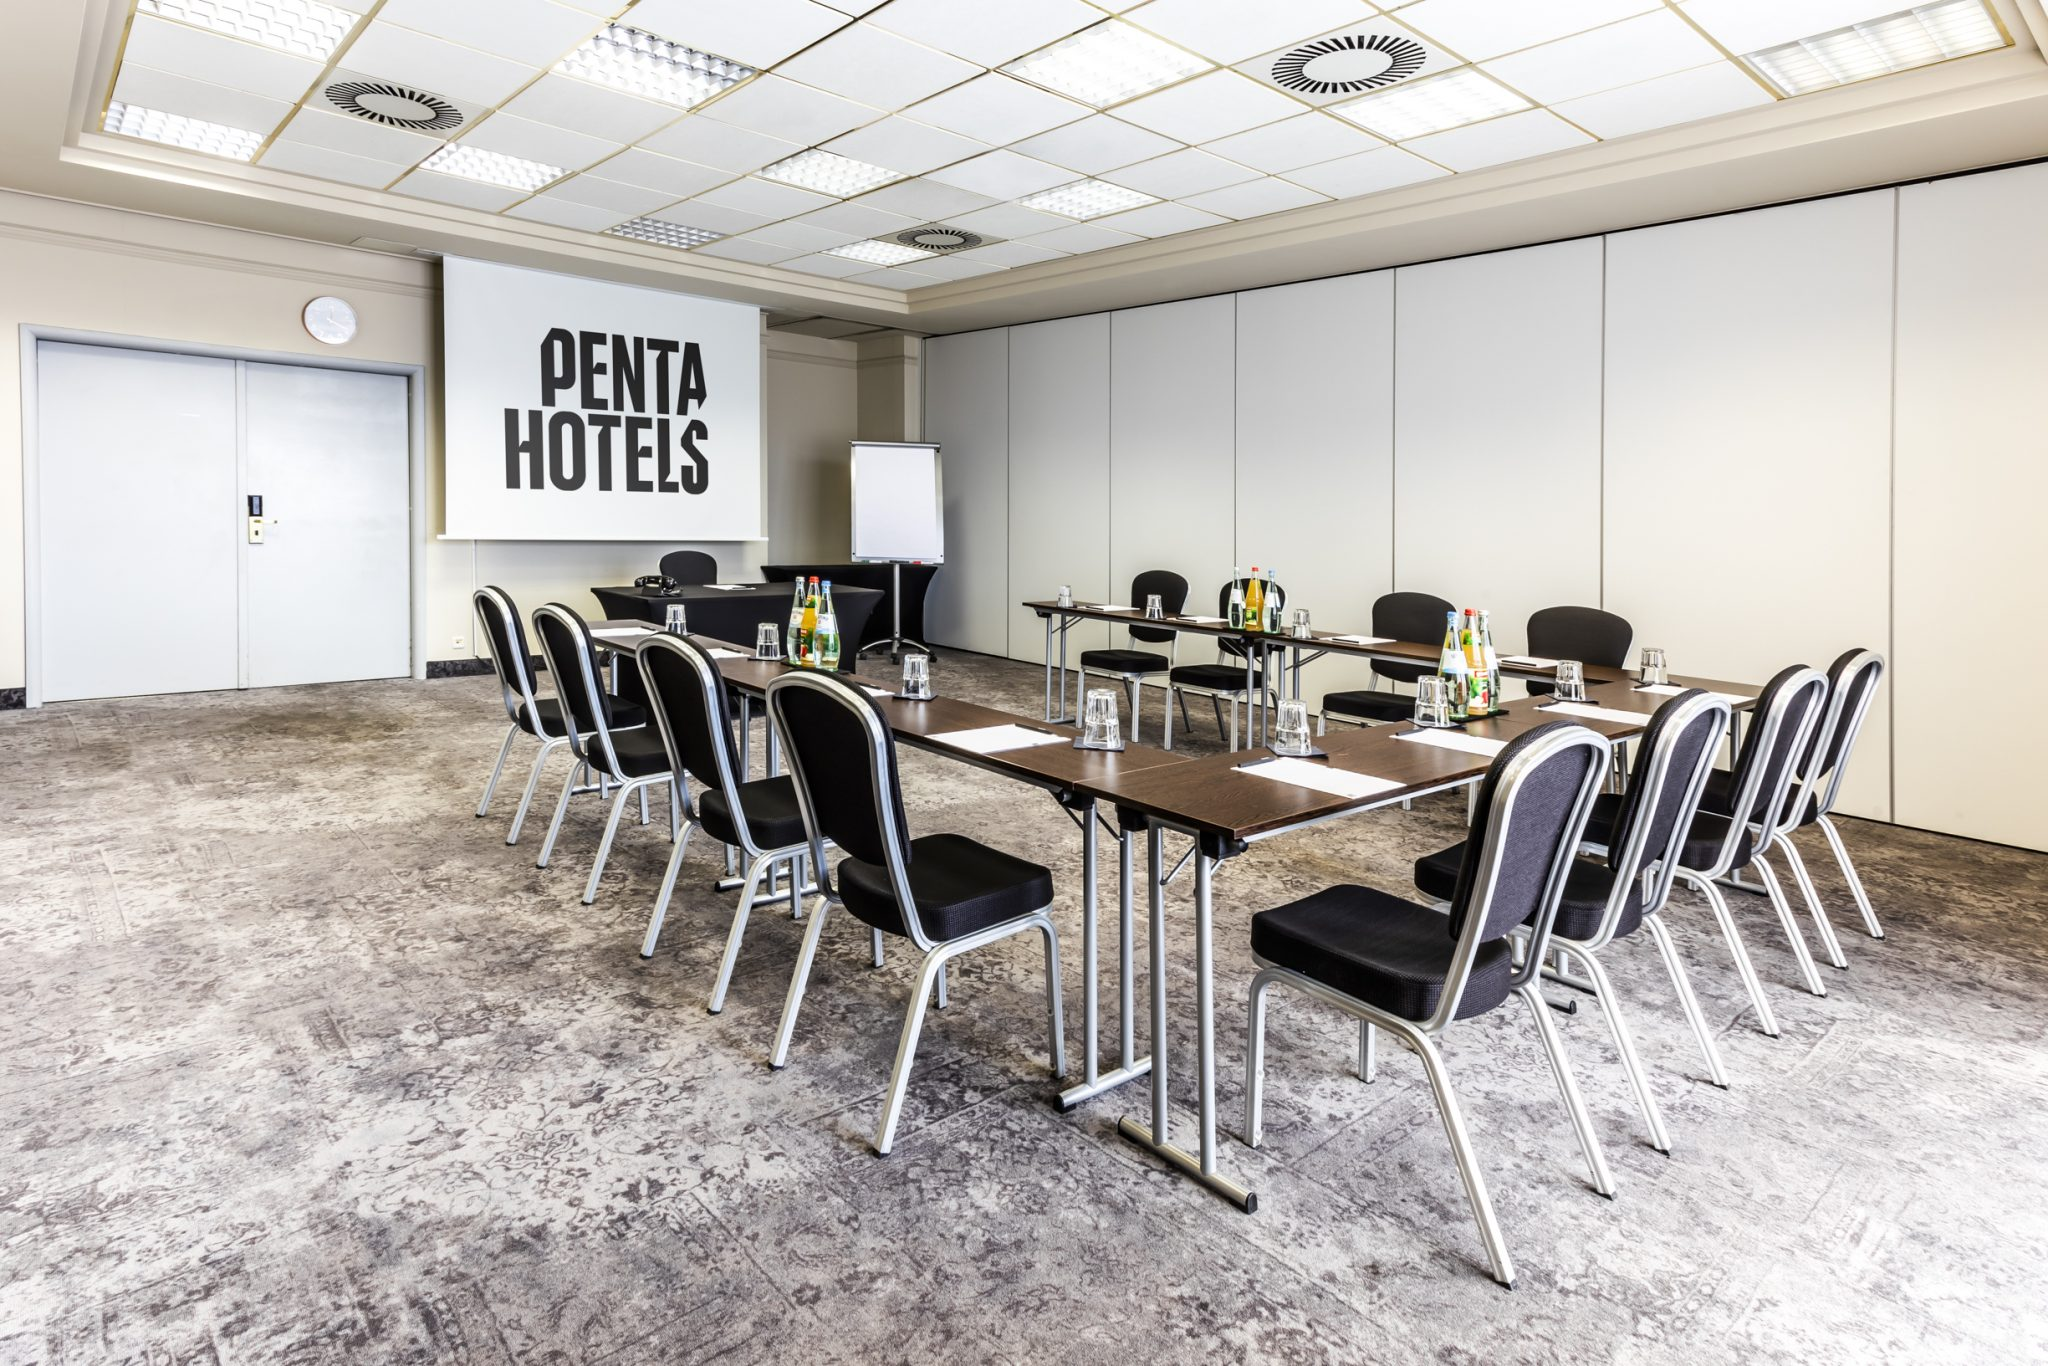 Penta hotels conference room table